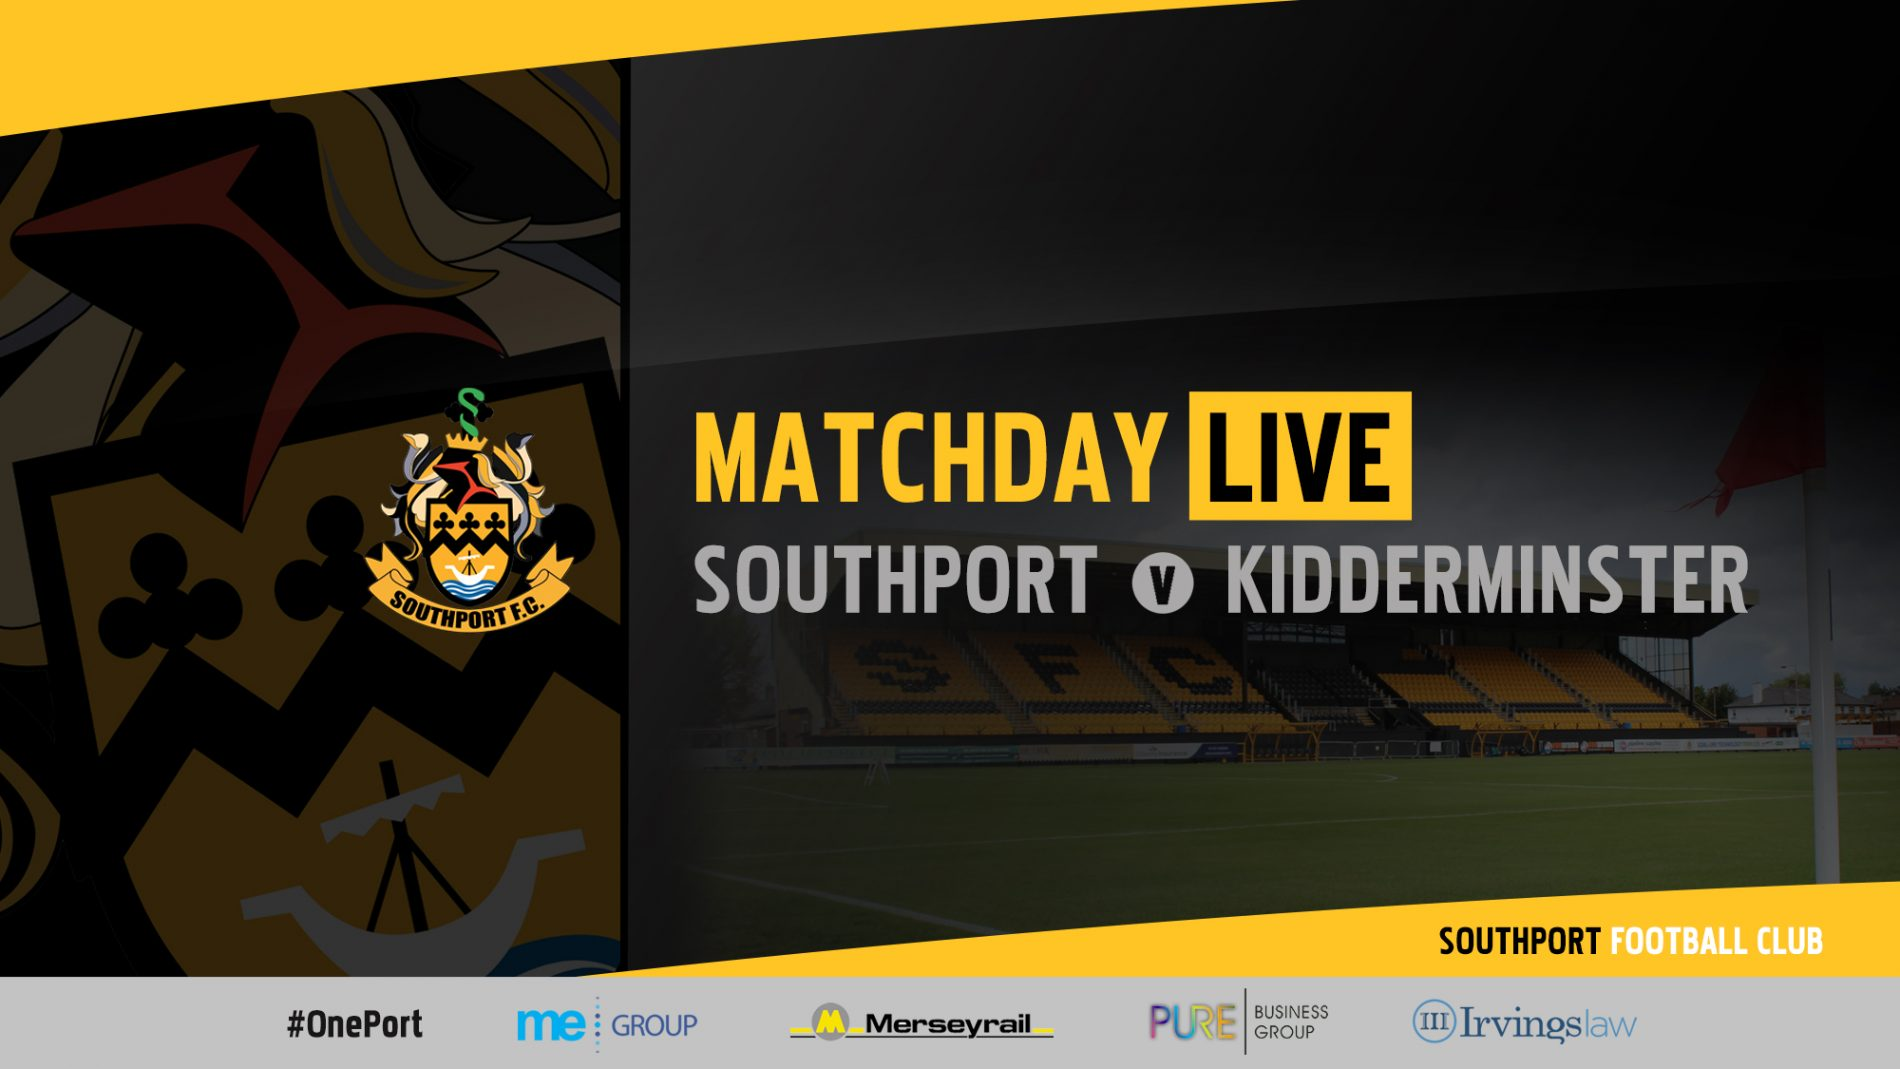 MATCHDAY LIVE | Southport vs Kidderminster Harriers